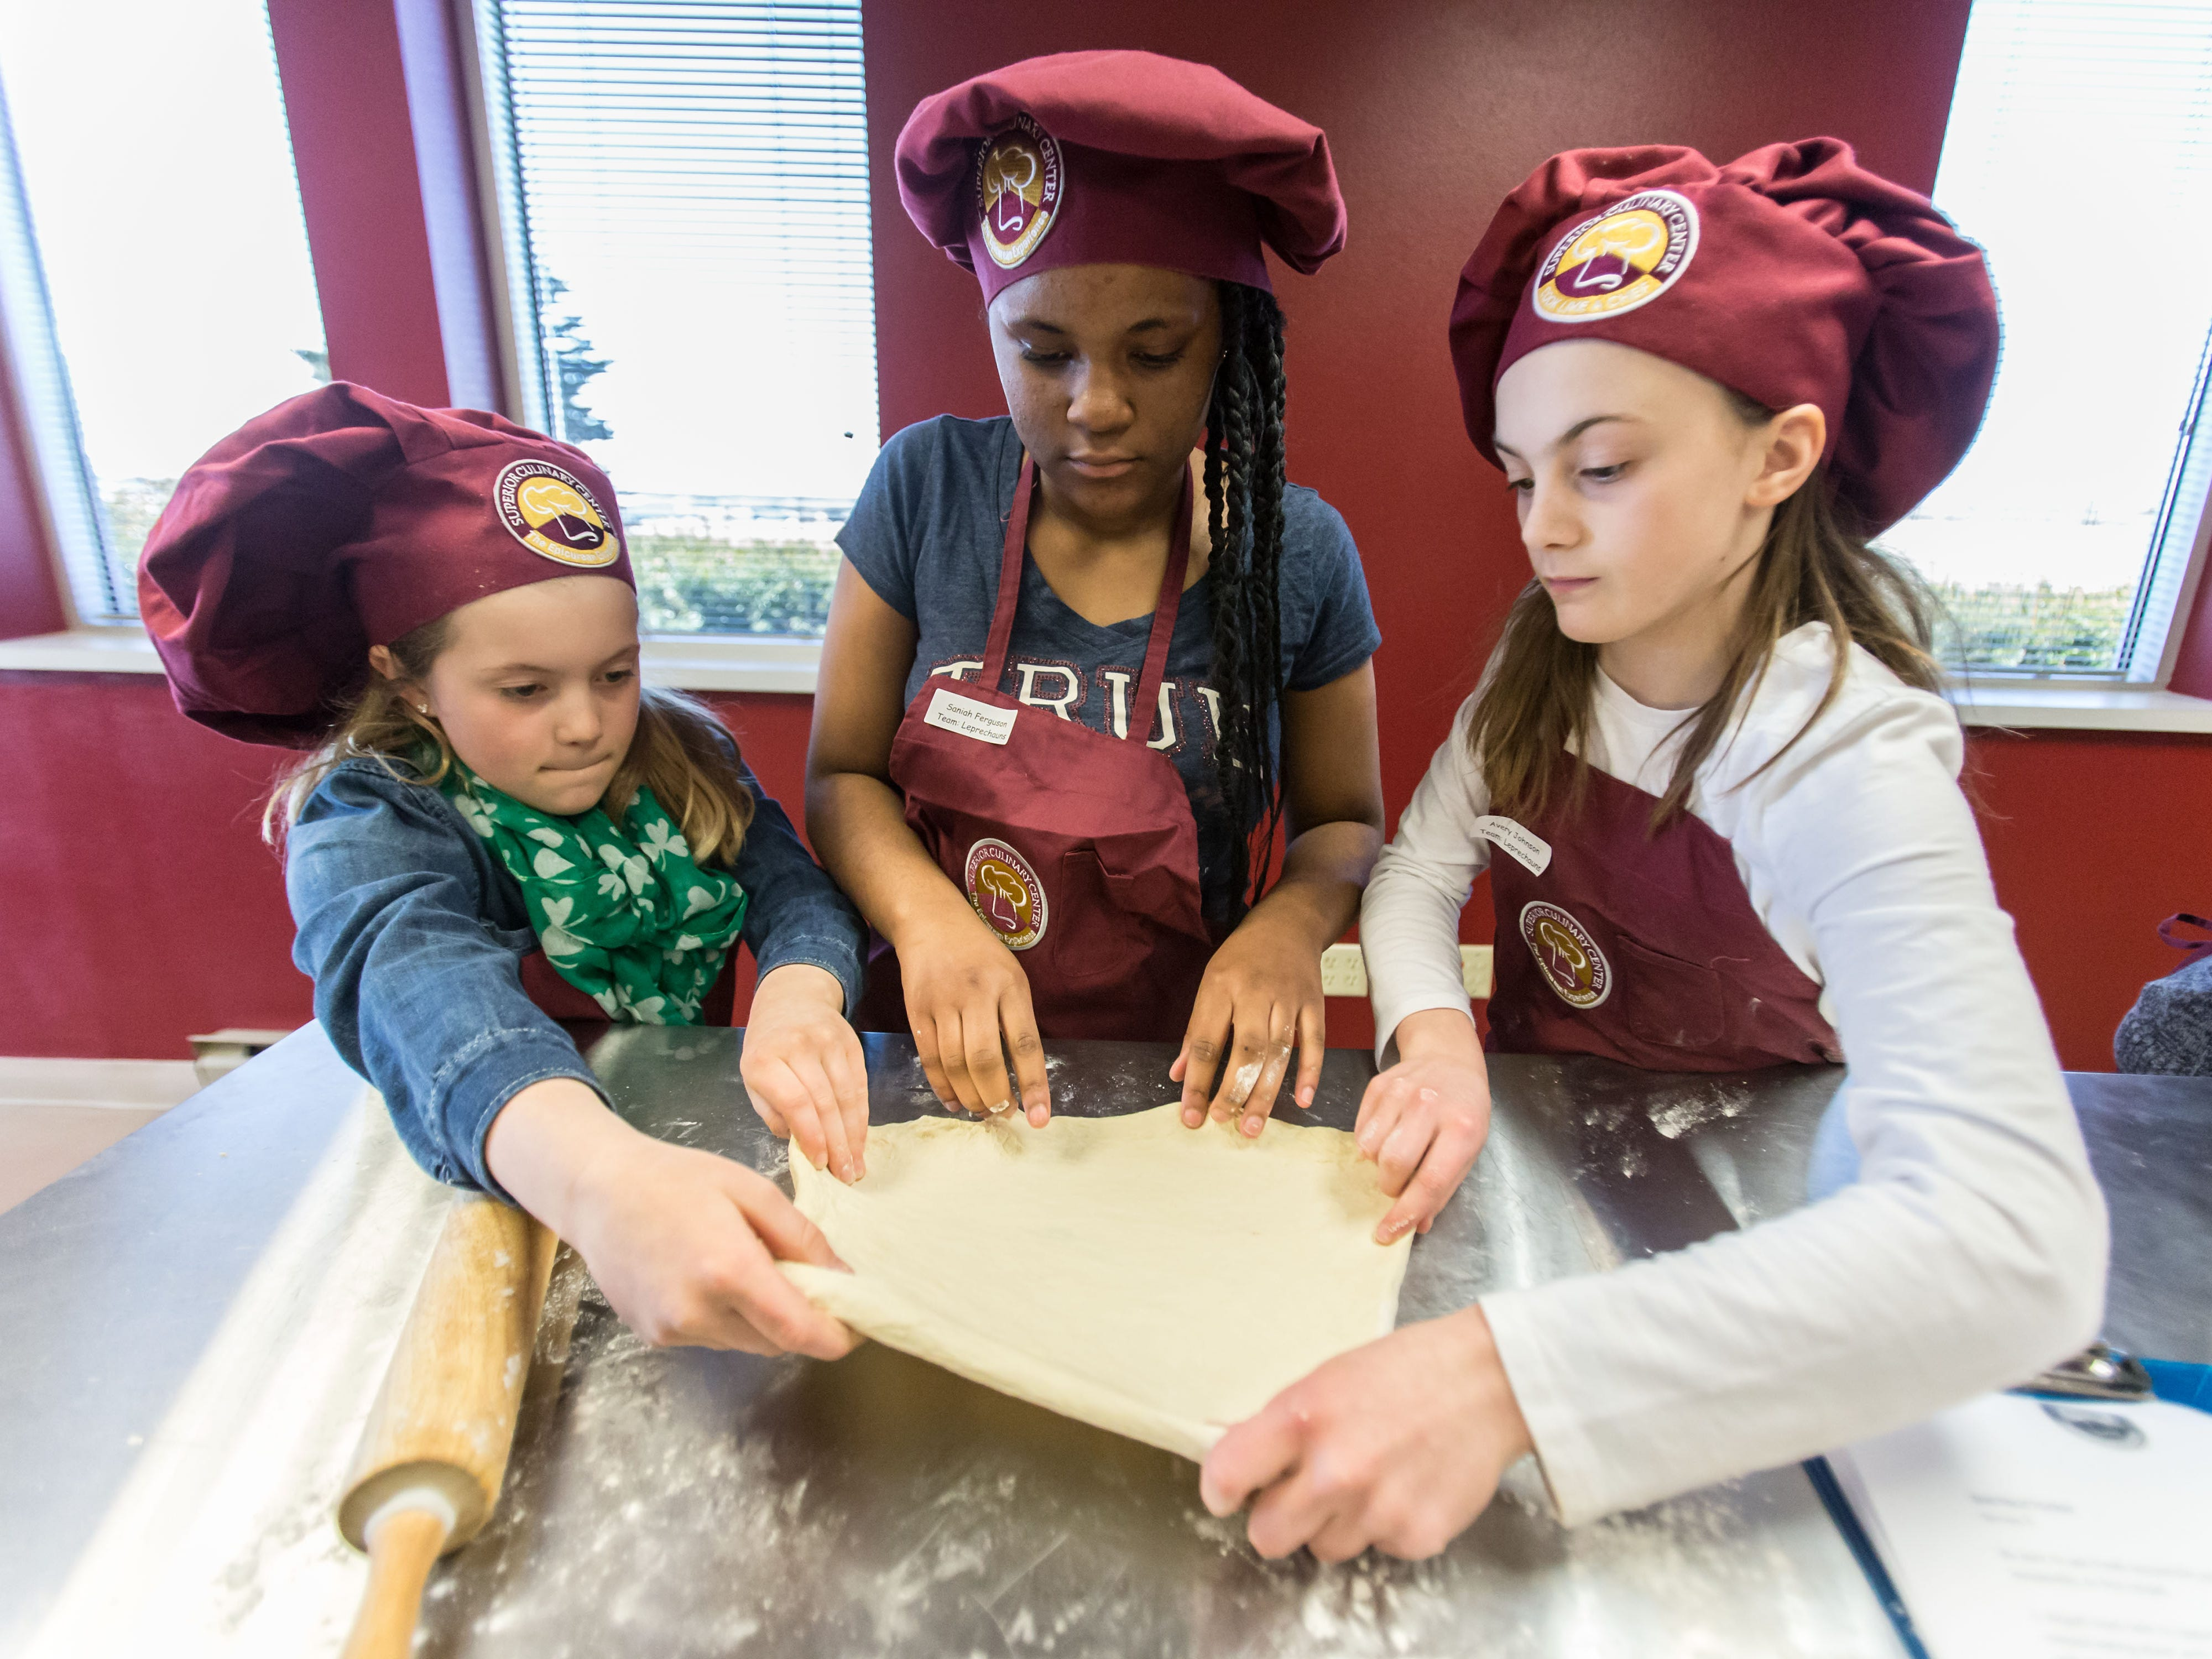 Chefs in training (from left) Kendall Johnson, 9, of Port Washington, Saniah Ferguson, 13, of Milwaukee and Avery Johnson, 11, of Port Washington, prepare dough for a homemade green pizza during the St. Patrick's Kids Cooking Class at Superior Culinary Center in Saint Francis on Saturday, March 16, 2019. Visit superiorculinarycenter.com for info on upcoming classes.